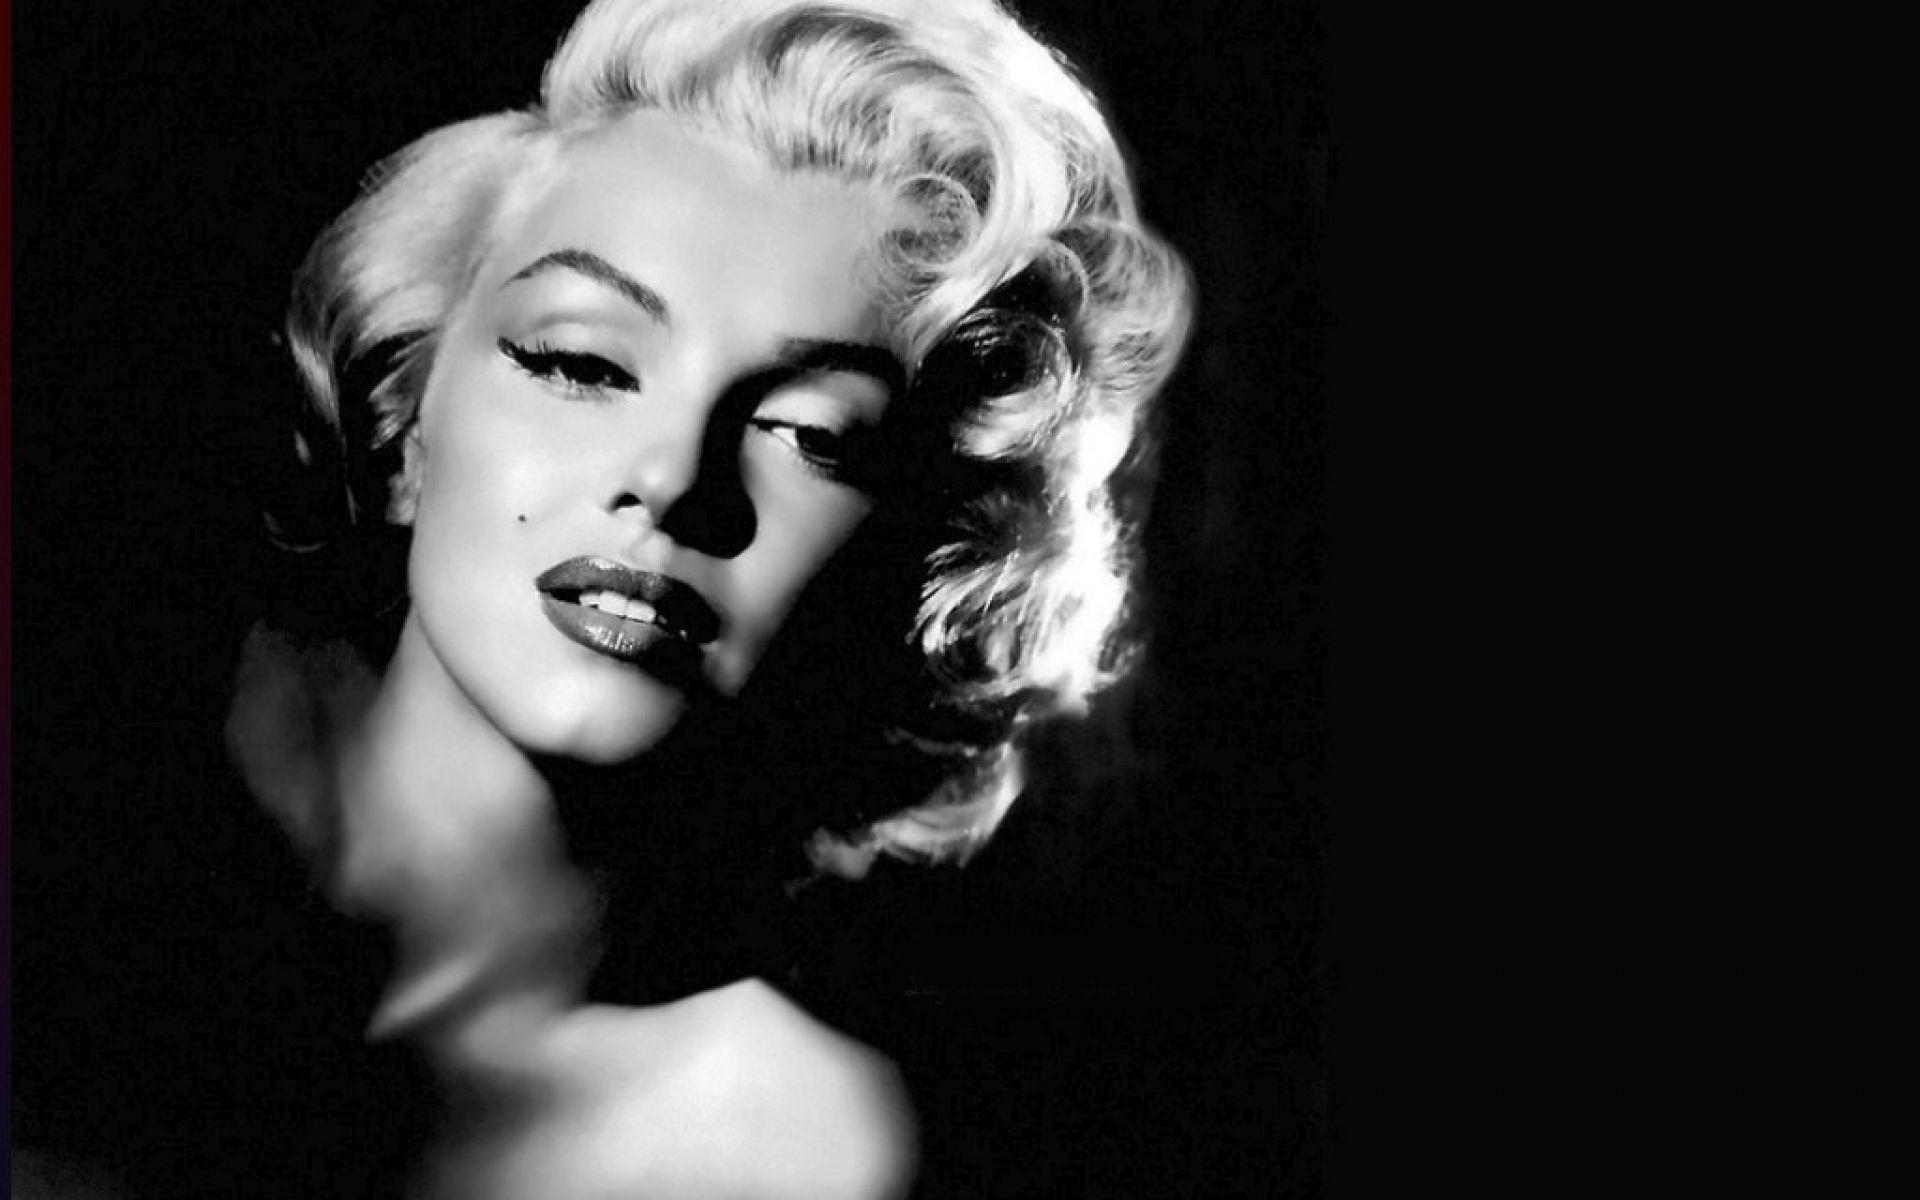 Marilyn Wallpapers - Full HD wallpaper search - page 5